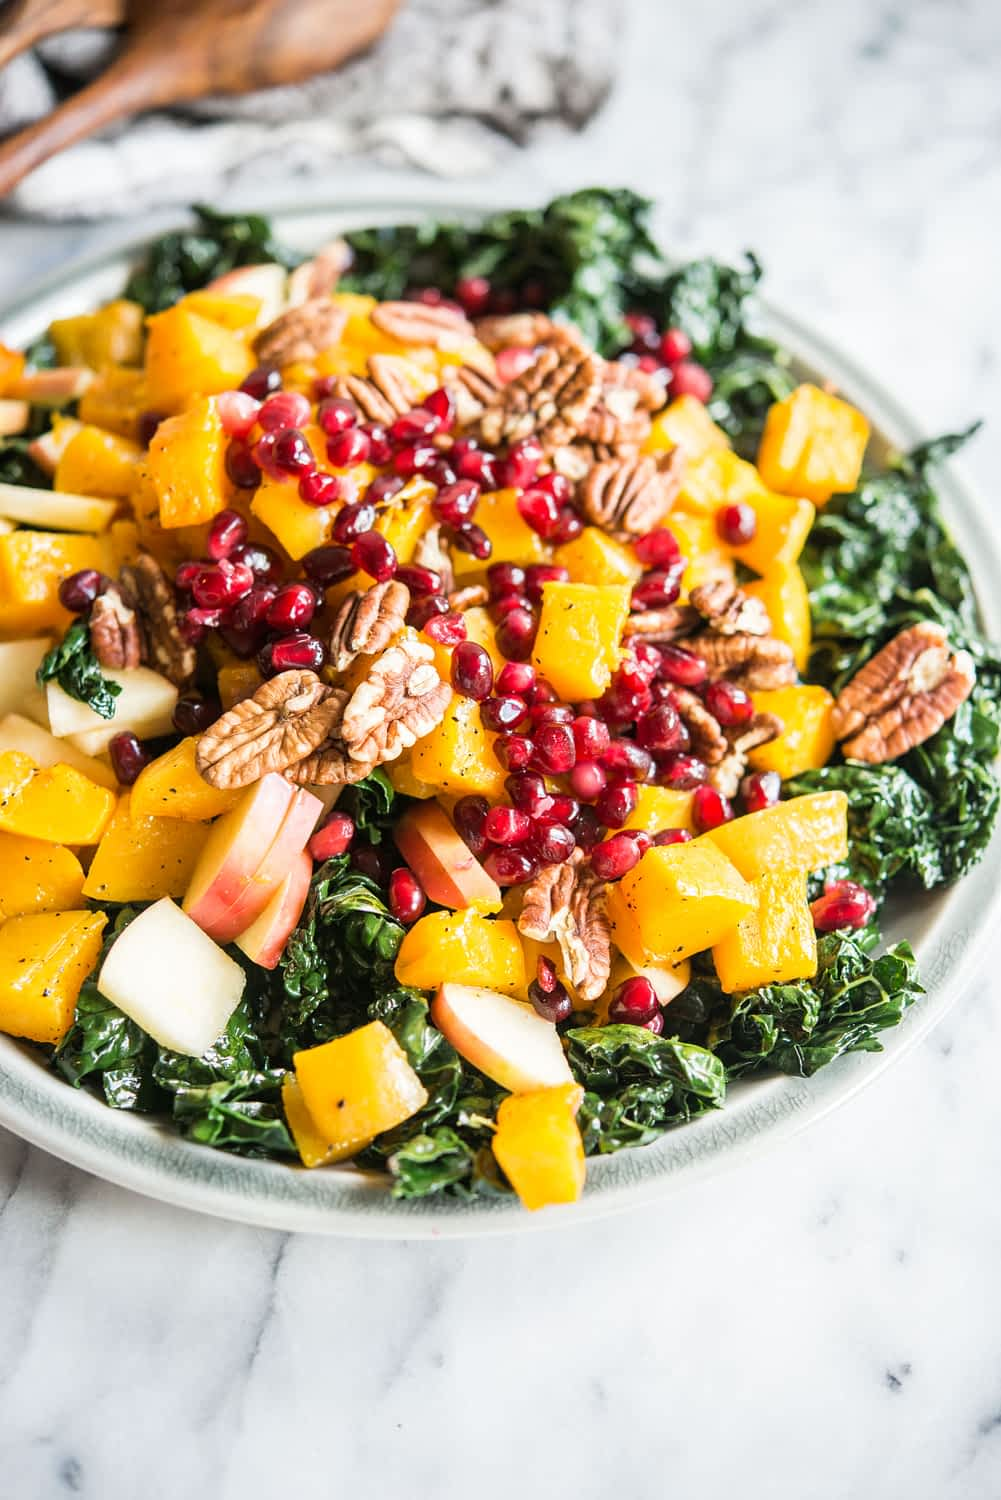 kale salad with roasted butternut squash, pecans, apples, and pomegranate seeds on a gray plate on a marble board